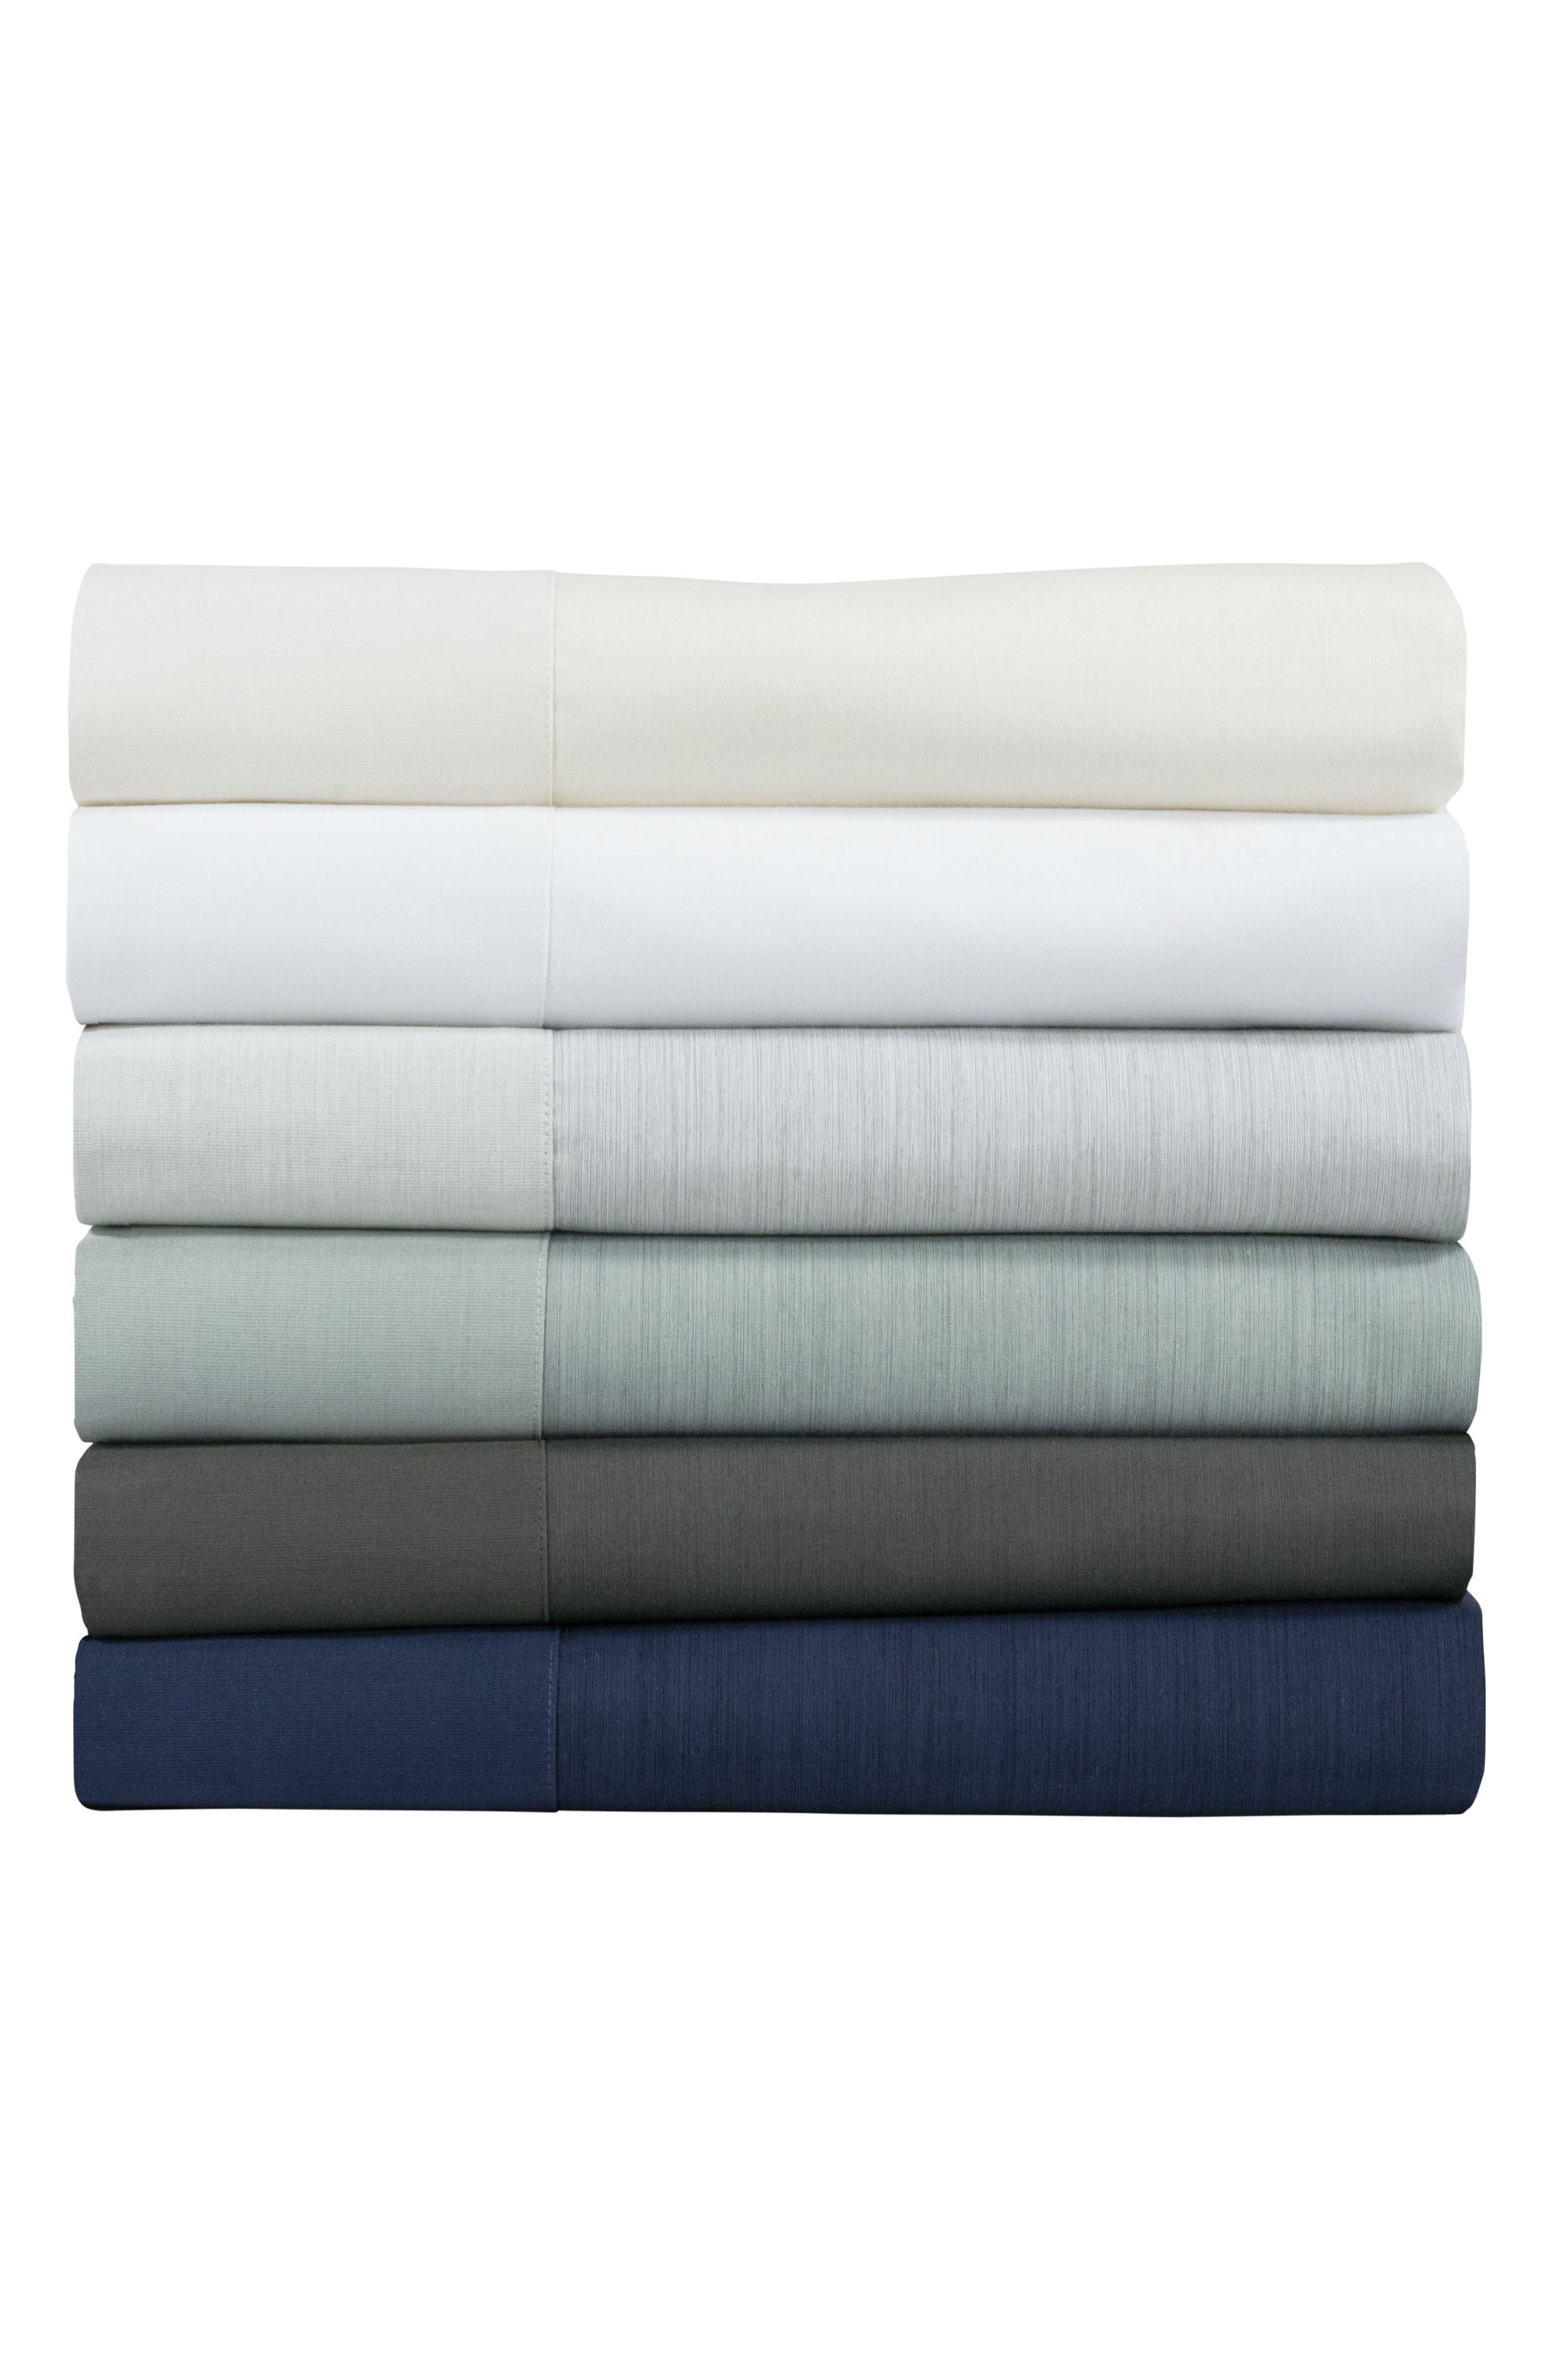 Striated Band 400 Thread Count Pillowcases,                             Alternate thumbnail 2, color,                             WHITE